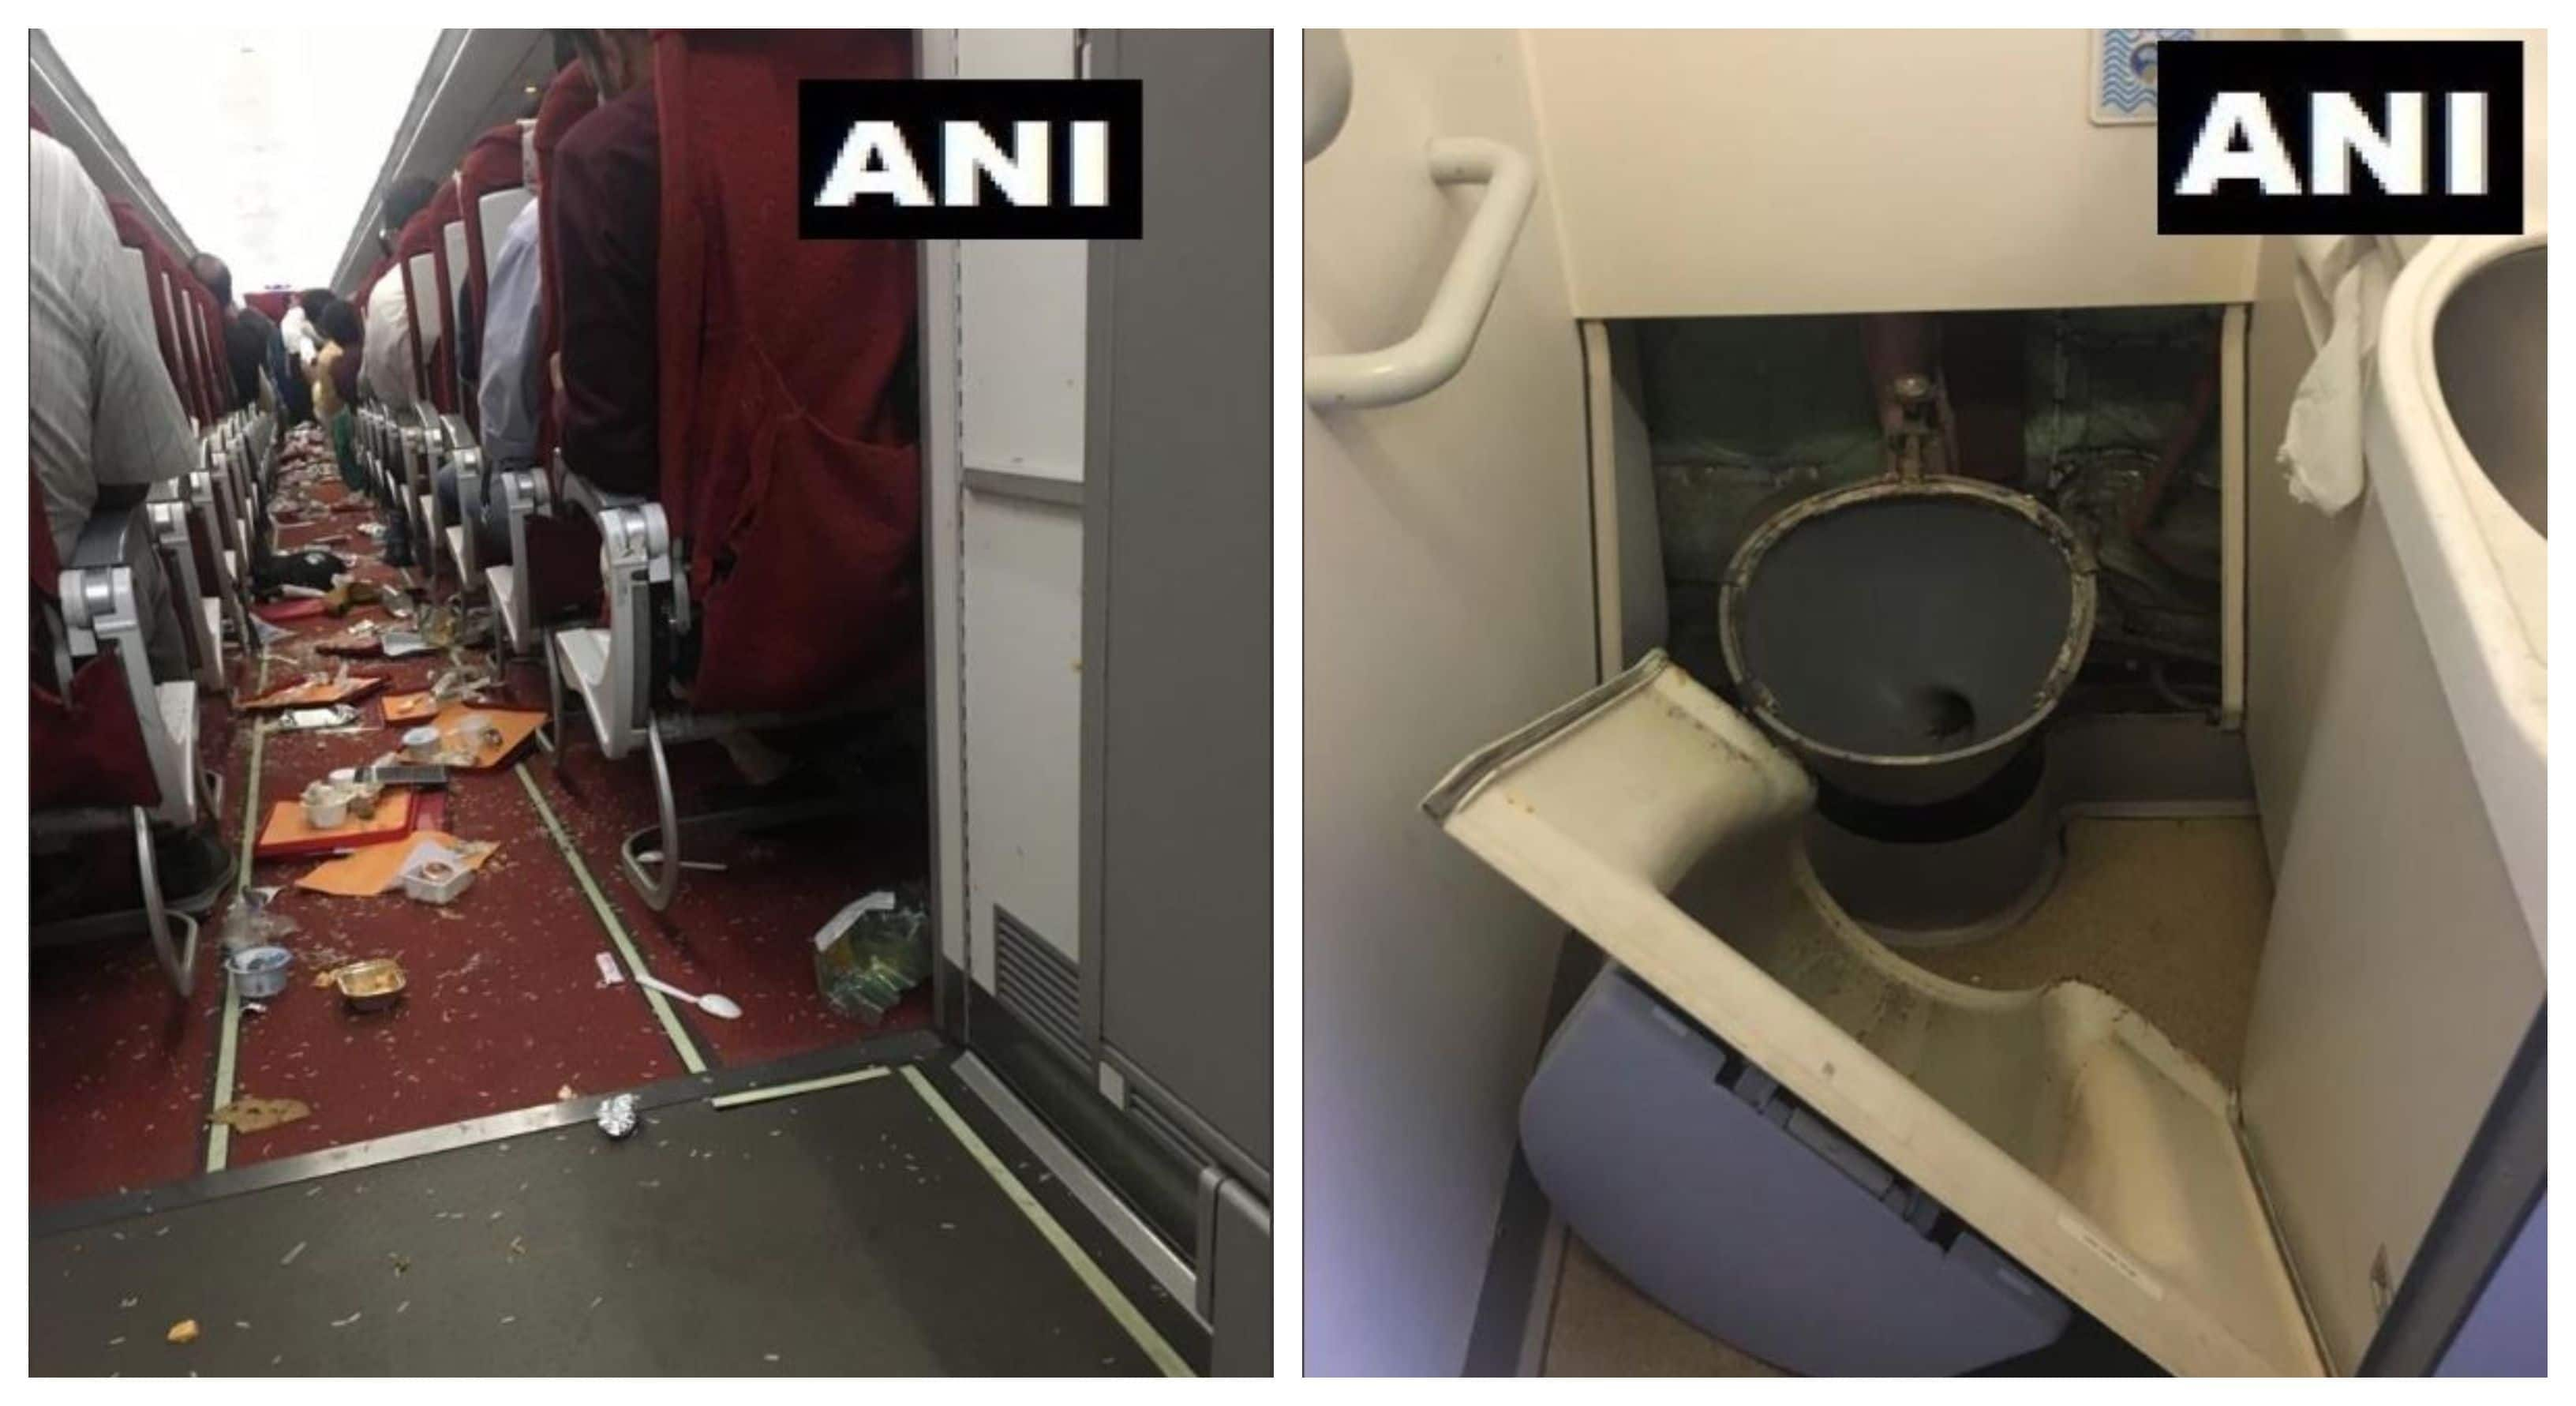 Turbulence hits 2 Air India Planes: Commode Rips Off, Cabin Crew Injured